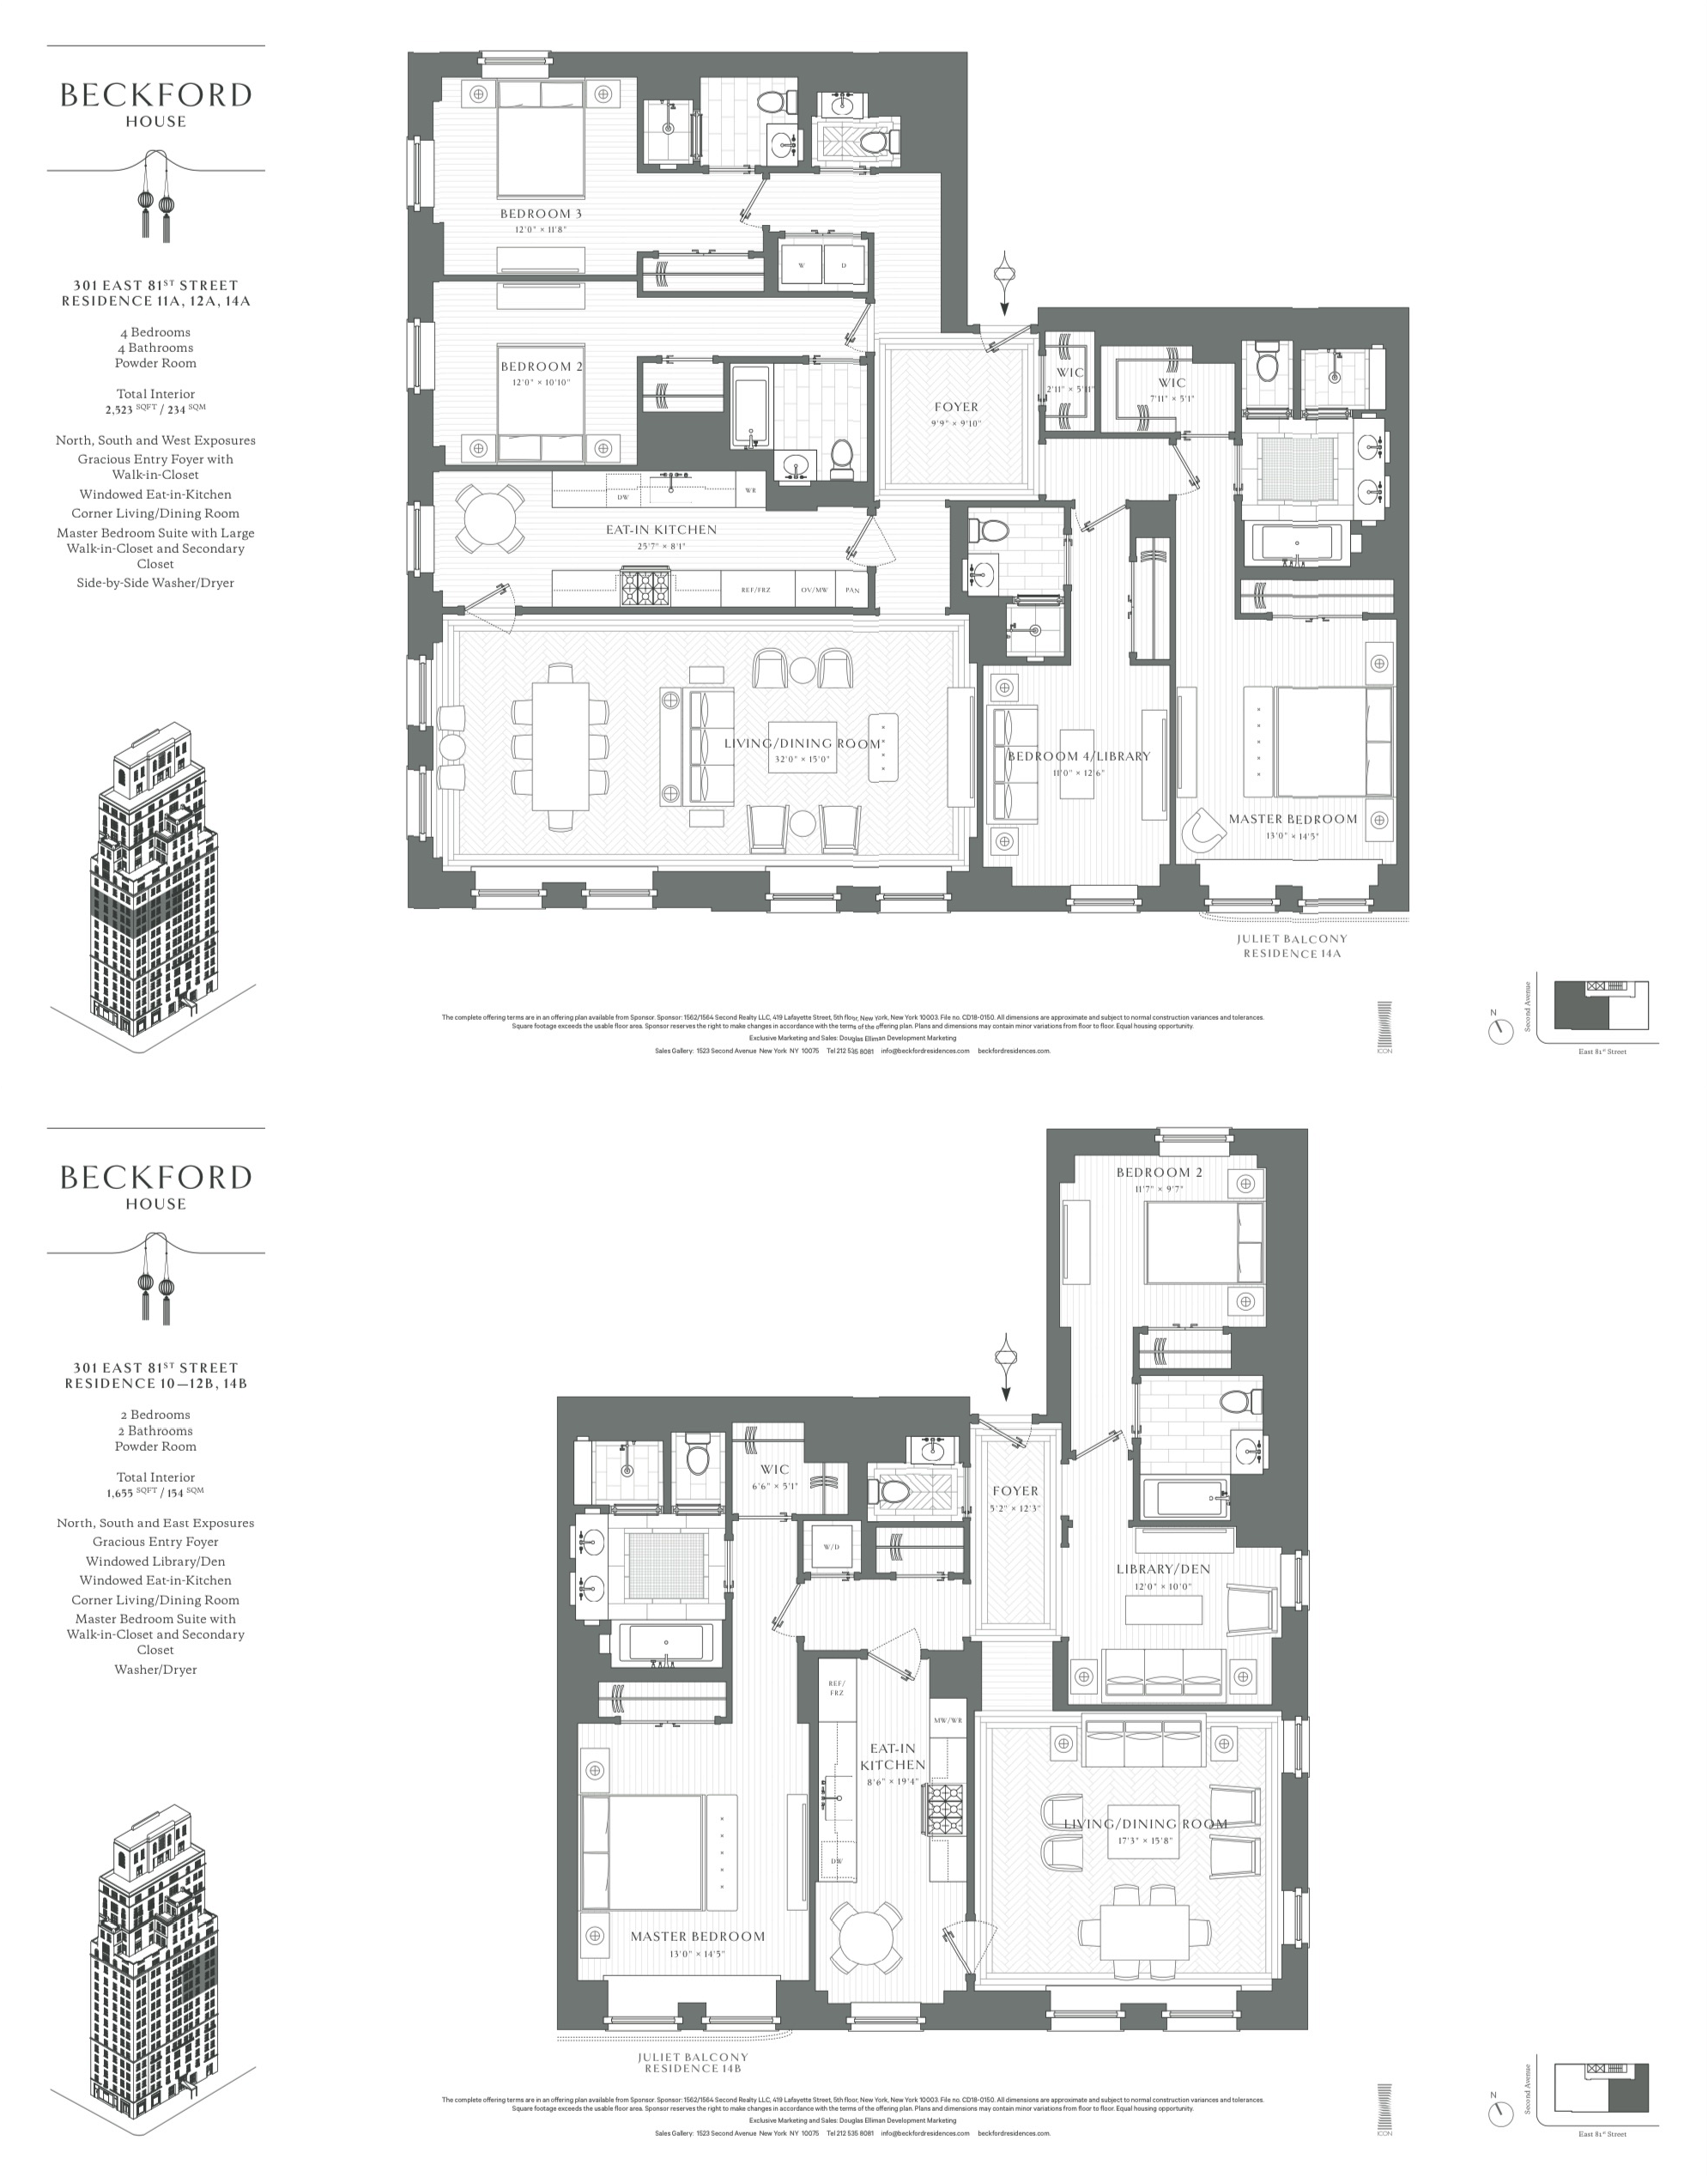 Beckford House Tower House Residence A B Penthouse Apartment Floor Plan Quality Interior Design City Living Apartment